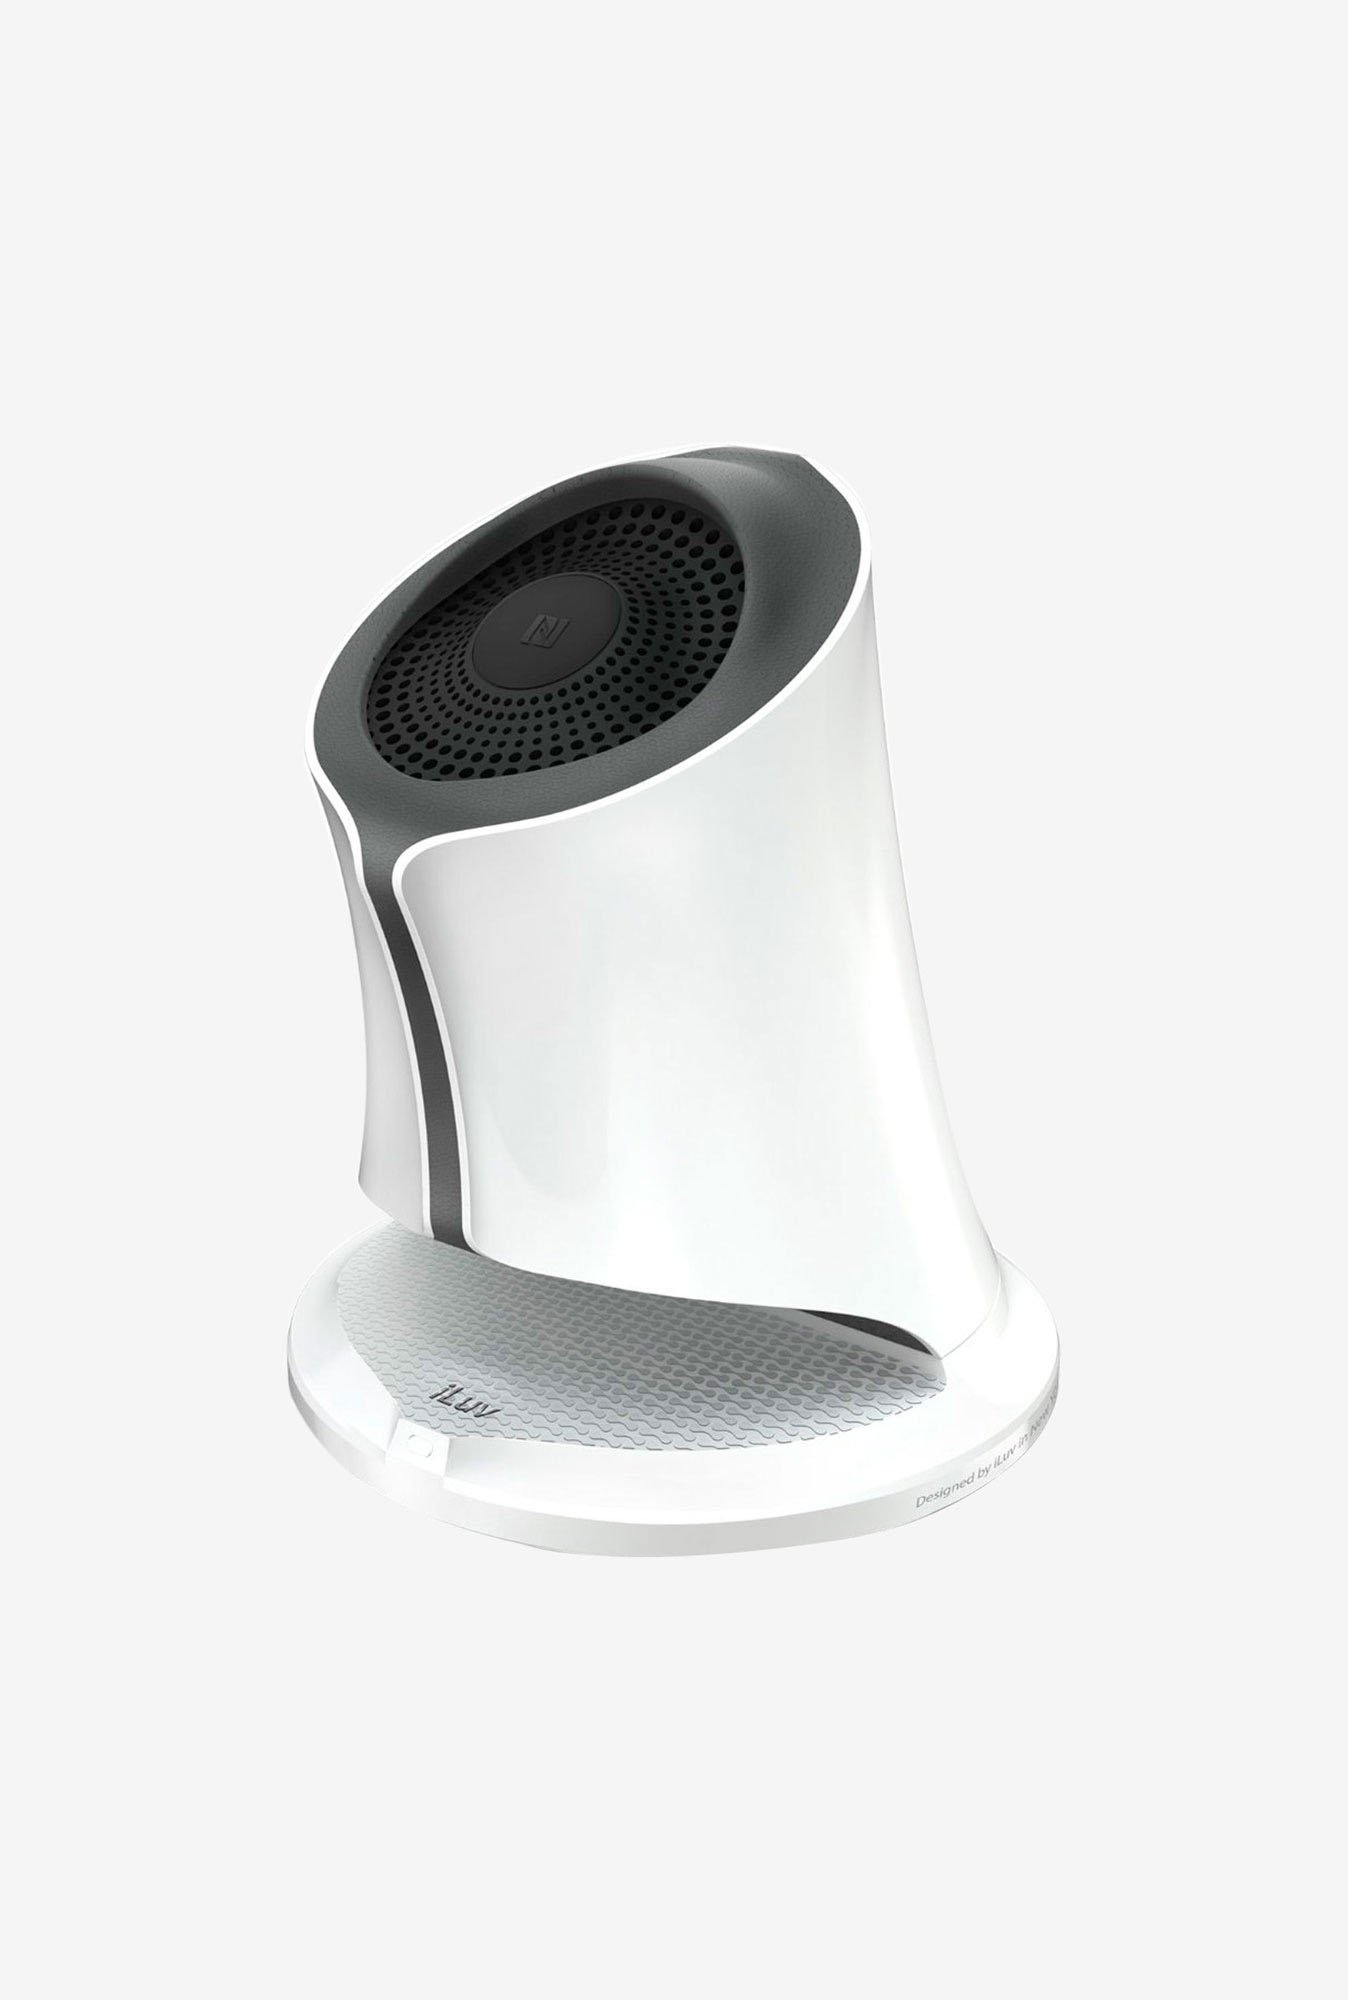 iluv Syren Nfc-Enabled Bluetooth Speaker (White)